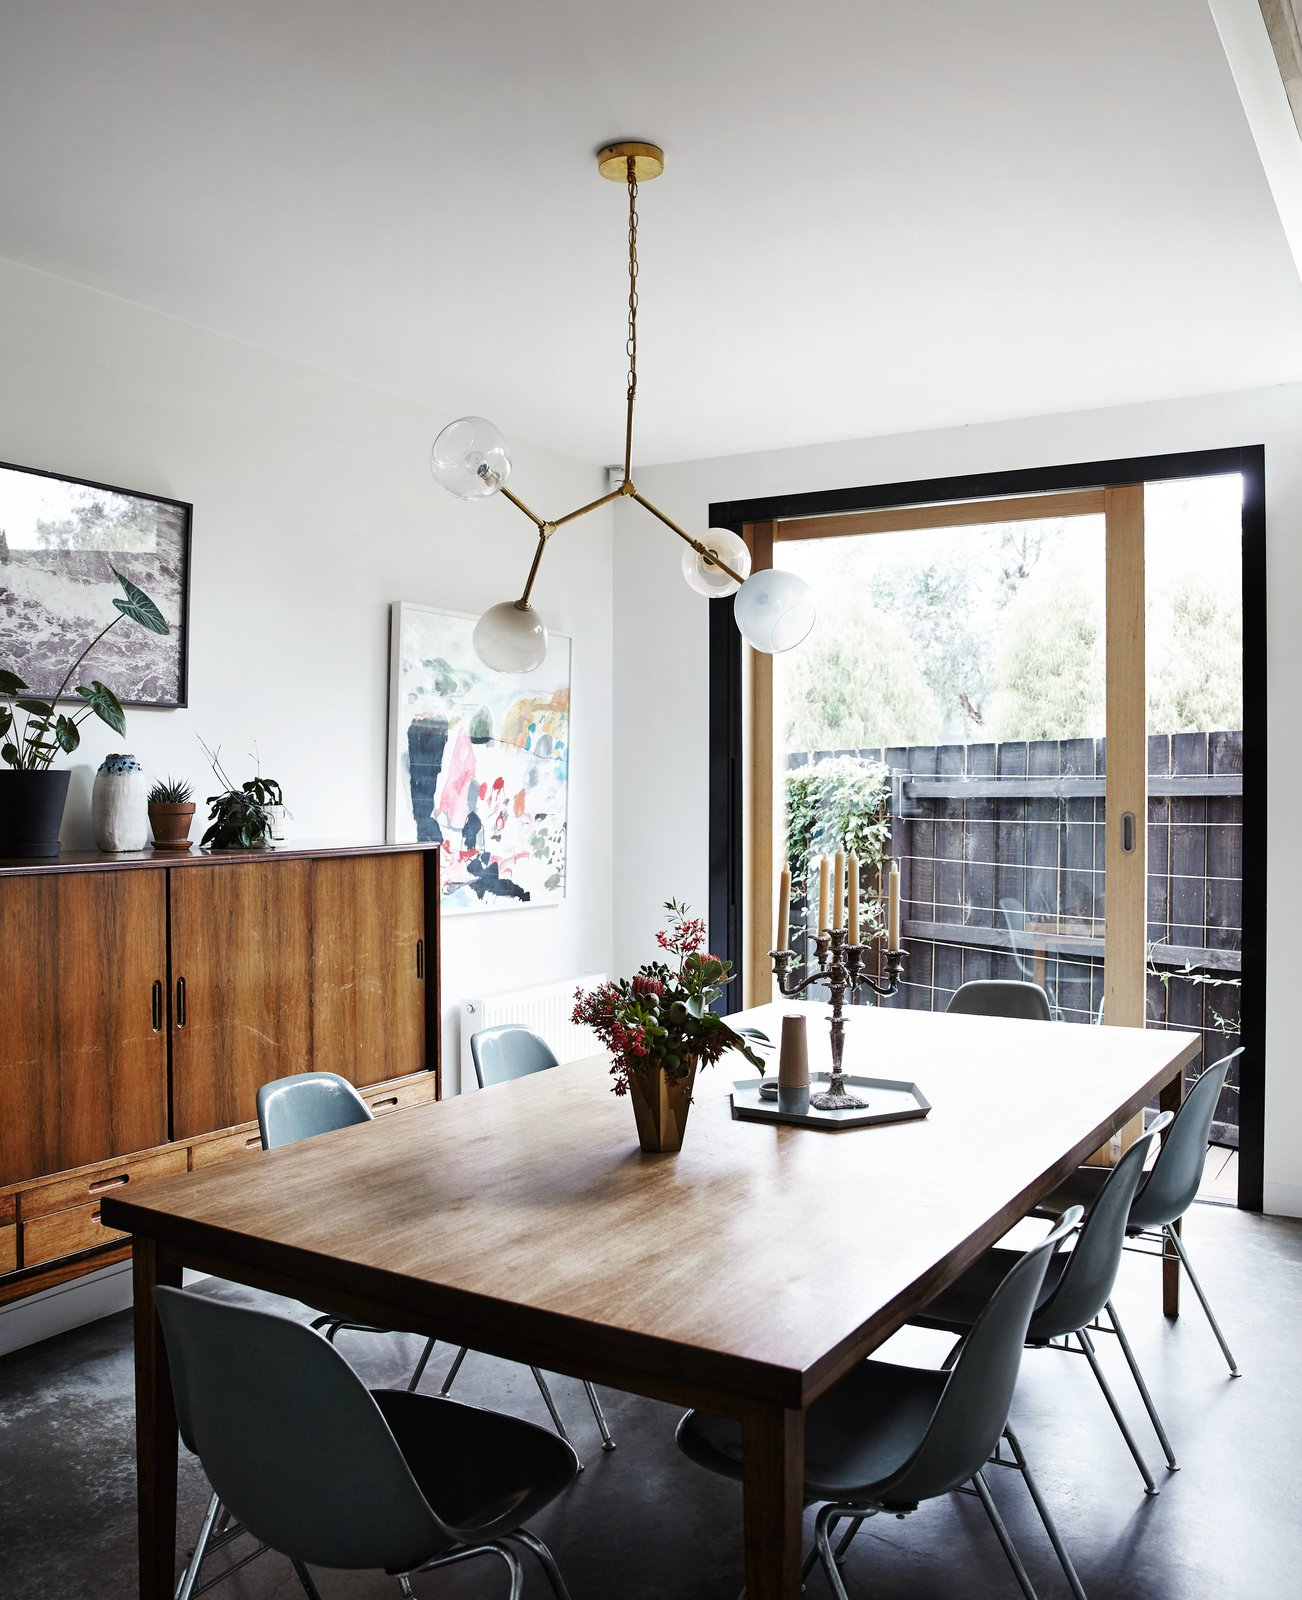 A Y chandelier by Douglas and Bec hangs above a vintage table and chairs.  Photo 6 of 13 in An Unassuming Edwardian Saves the Best for Out Back